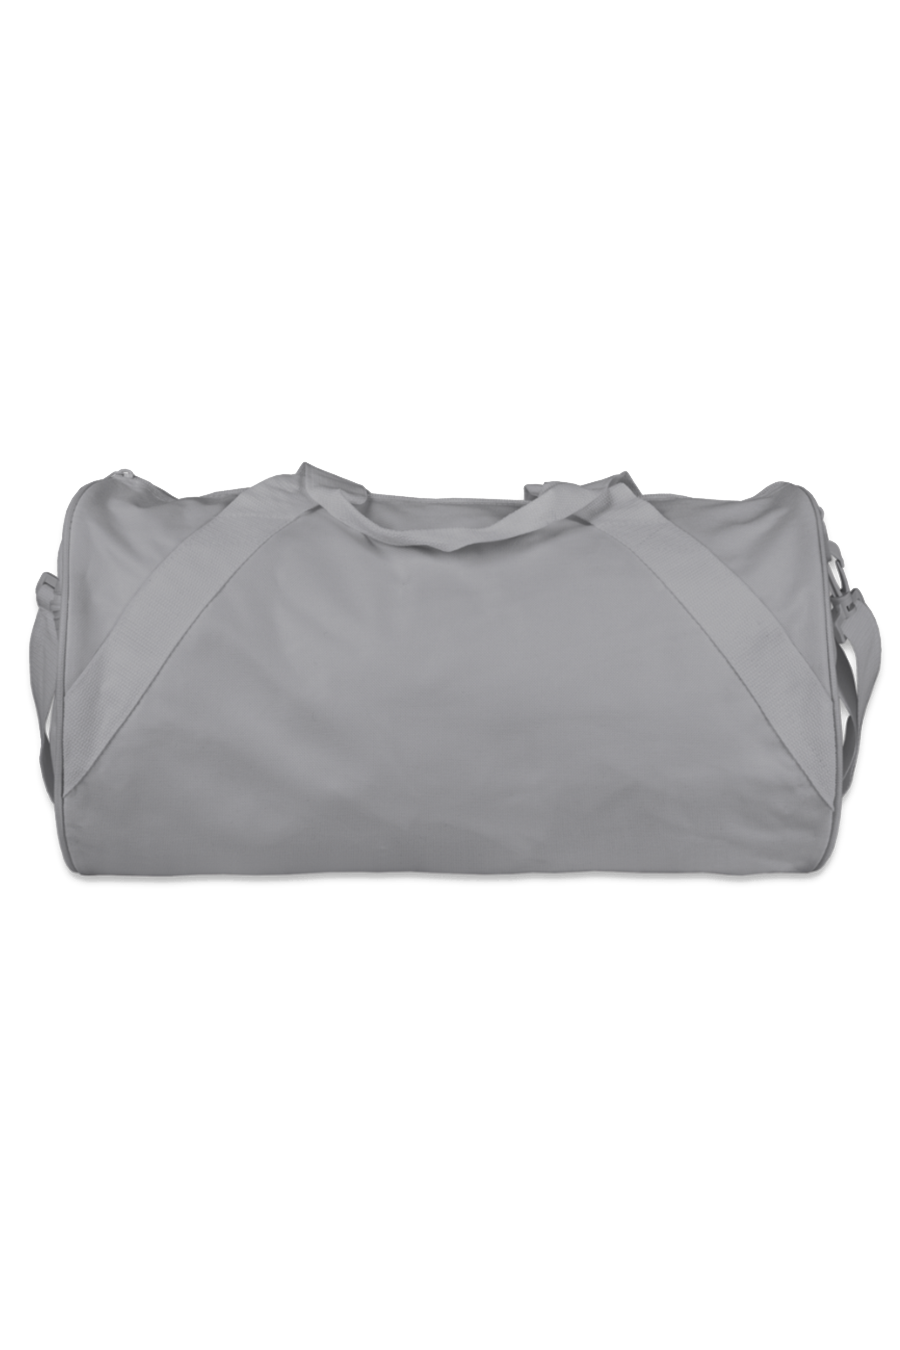 Not Yours Duffel Bag | Light Grey